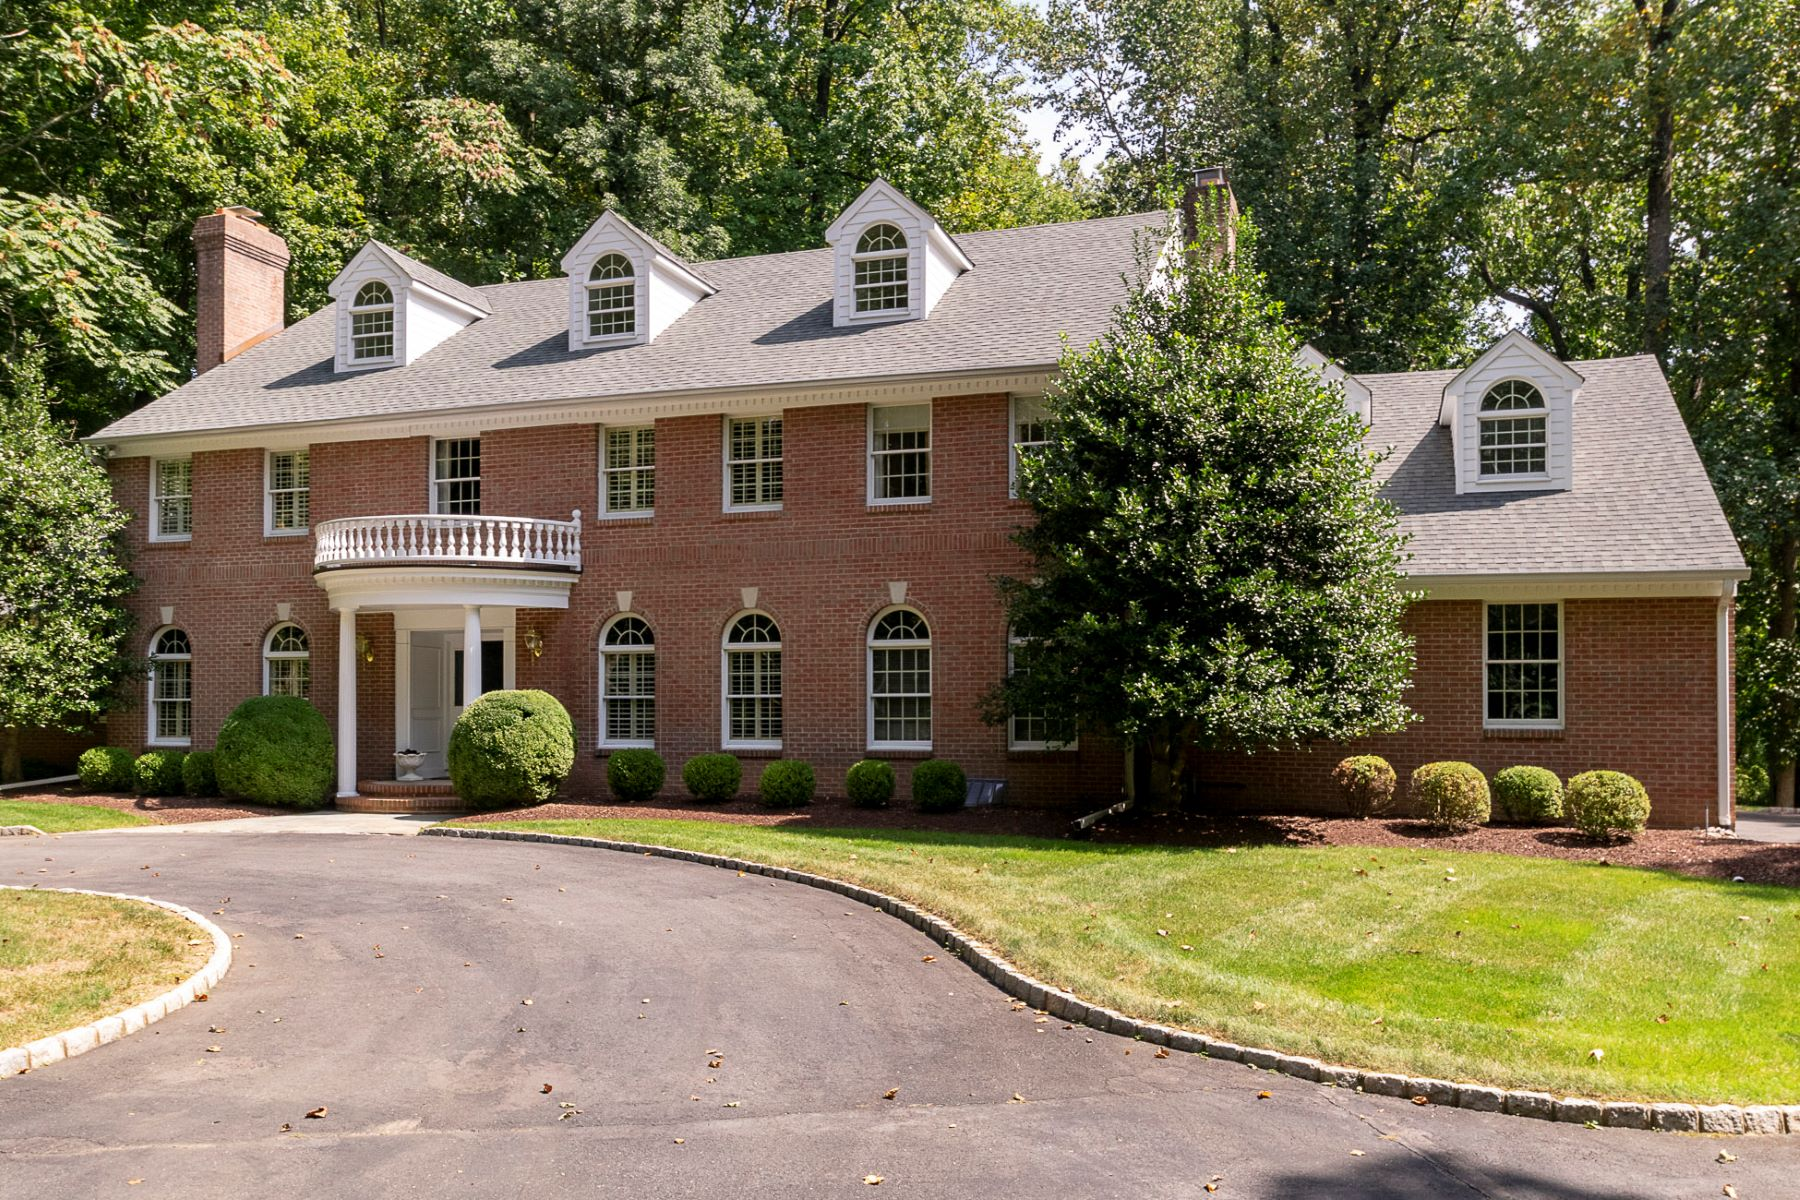 Graciousness and Privacy, Just Minutes from Town 265 Cherry Hill Road, Princeton, New Jersey 08540 Förenta staterna